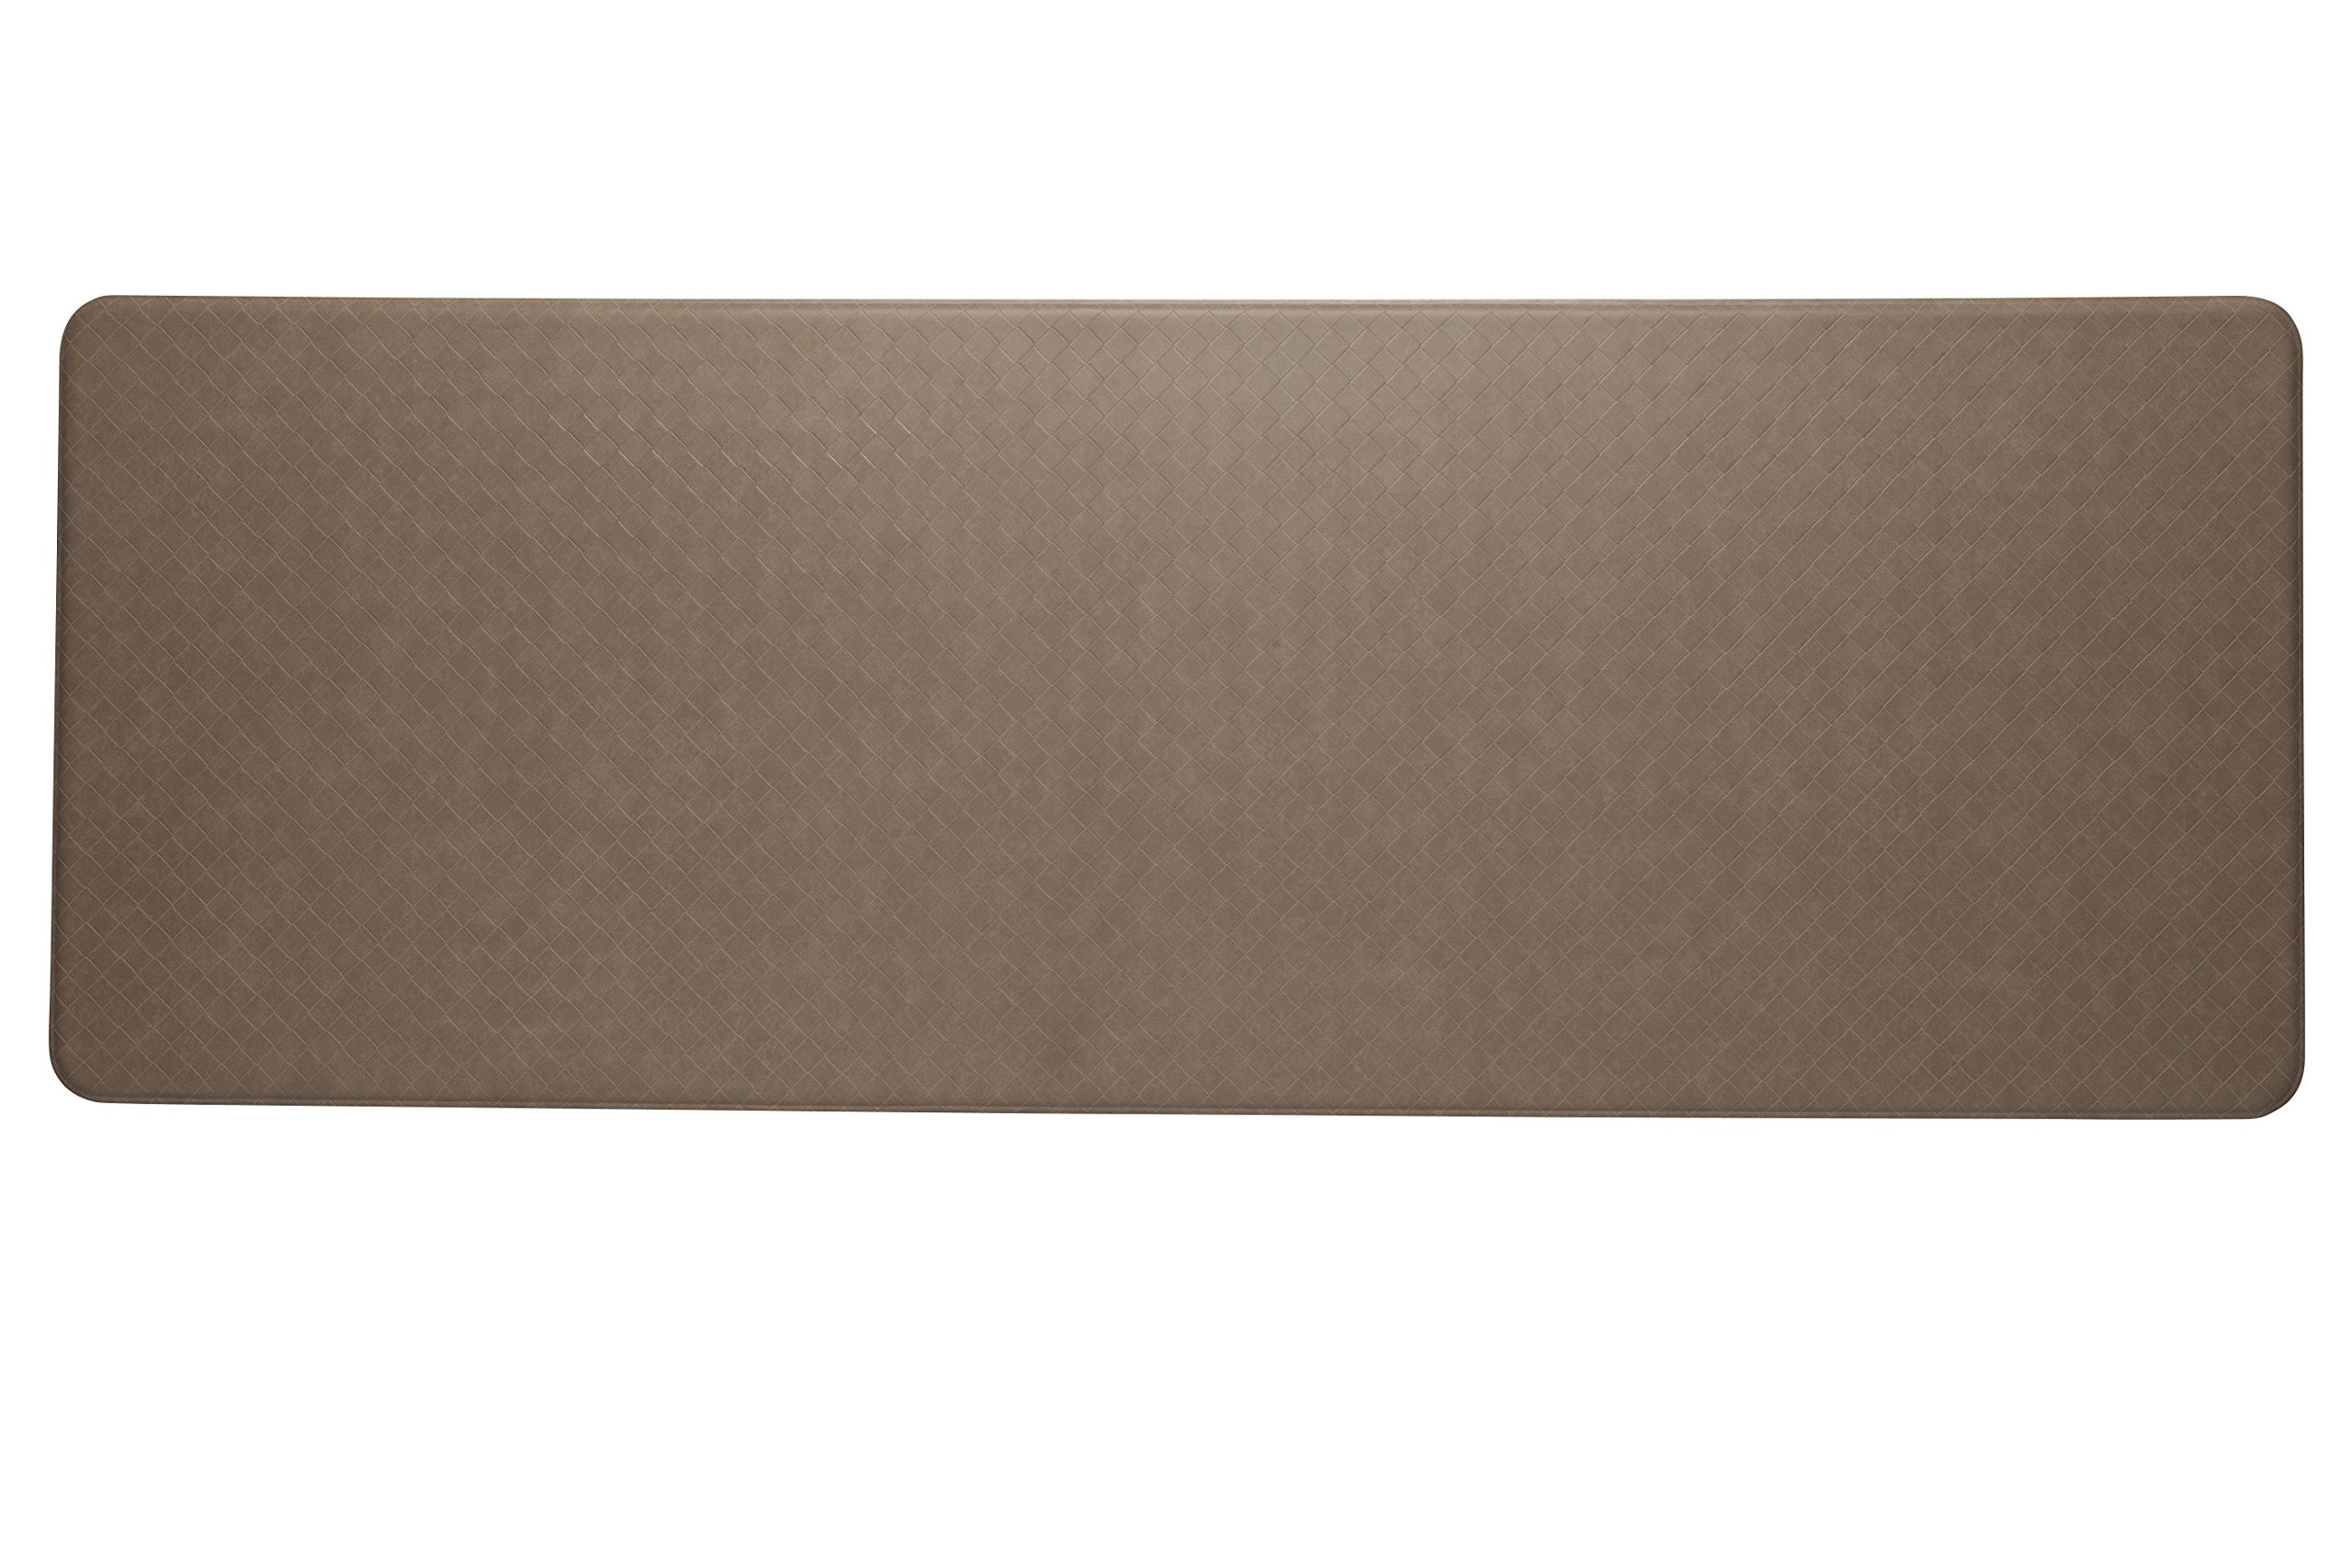 Imprint Cumulus9 Kitchen Mat Nantucket Series Island Area Runner  26 in. x 72 in. x 5/8 in. Mocha